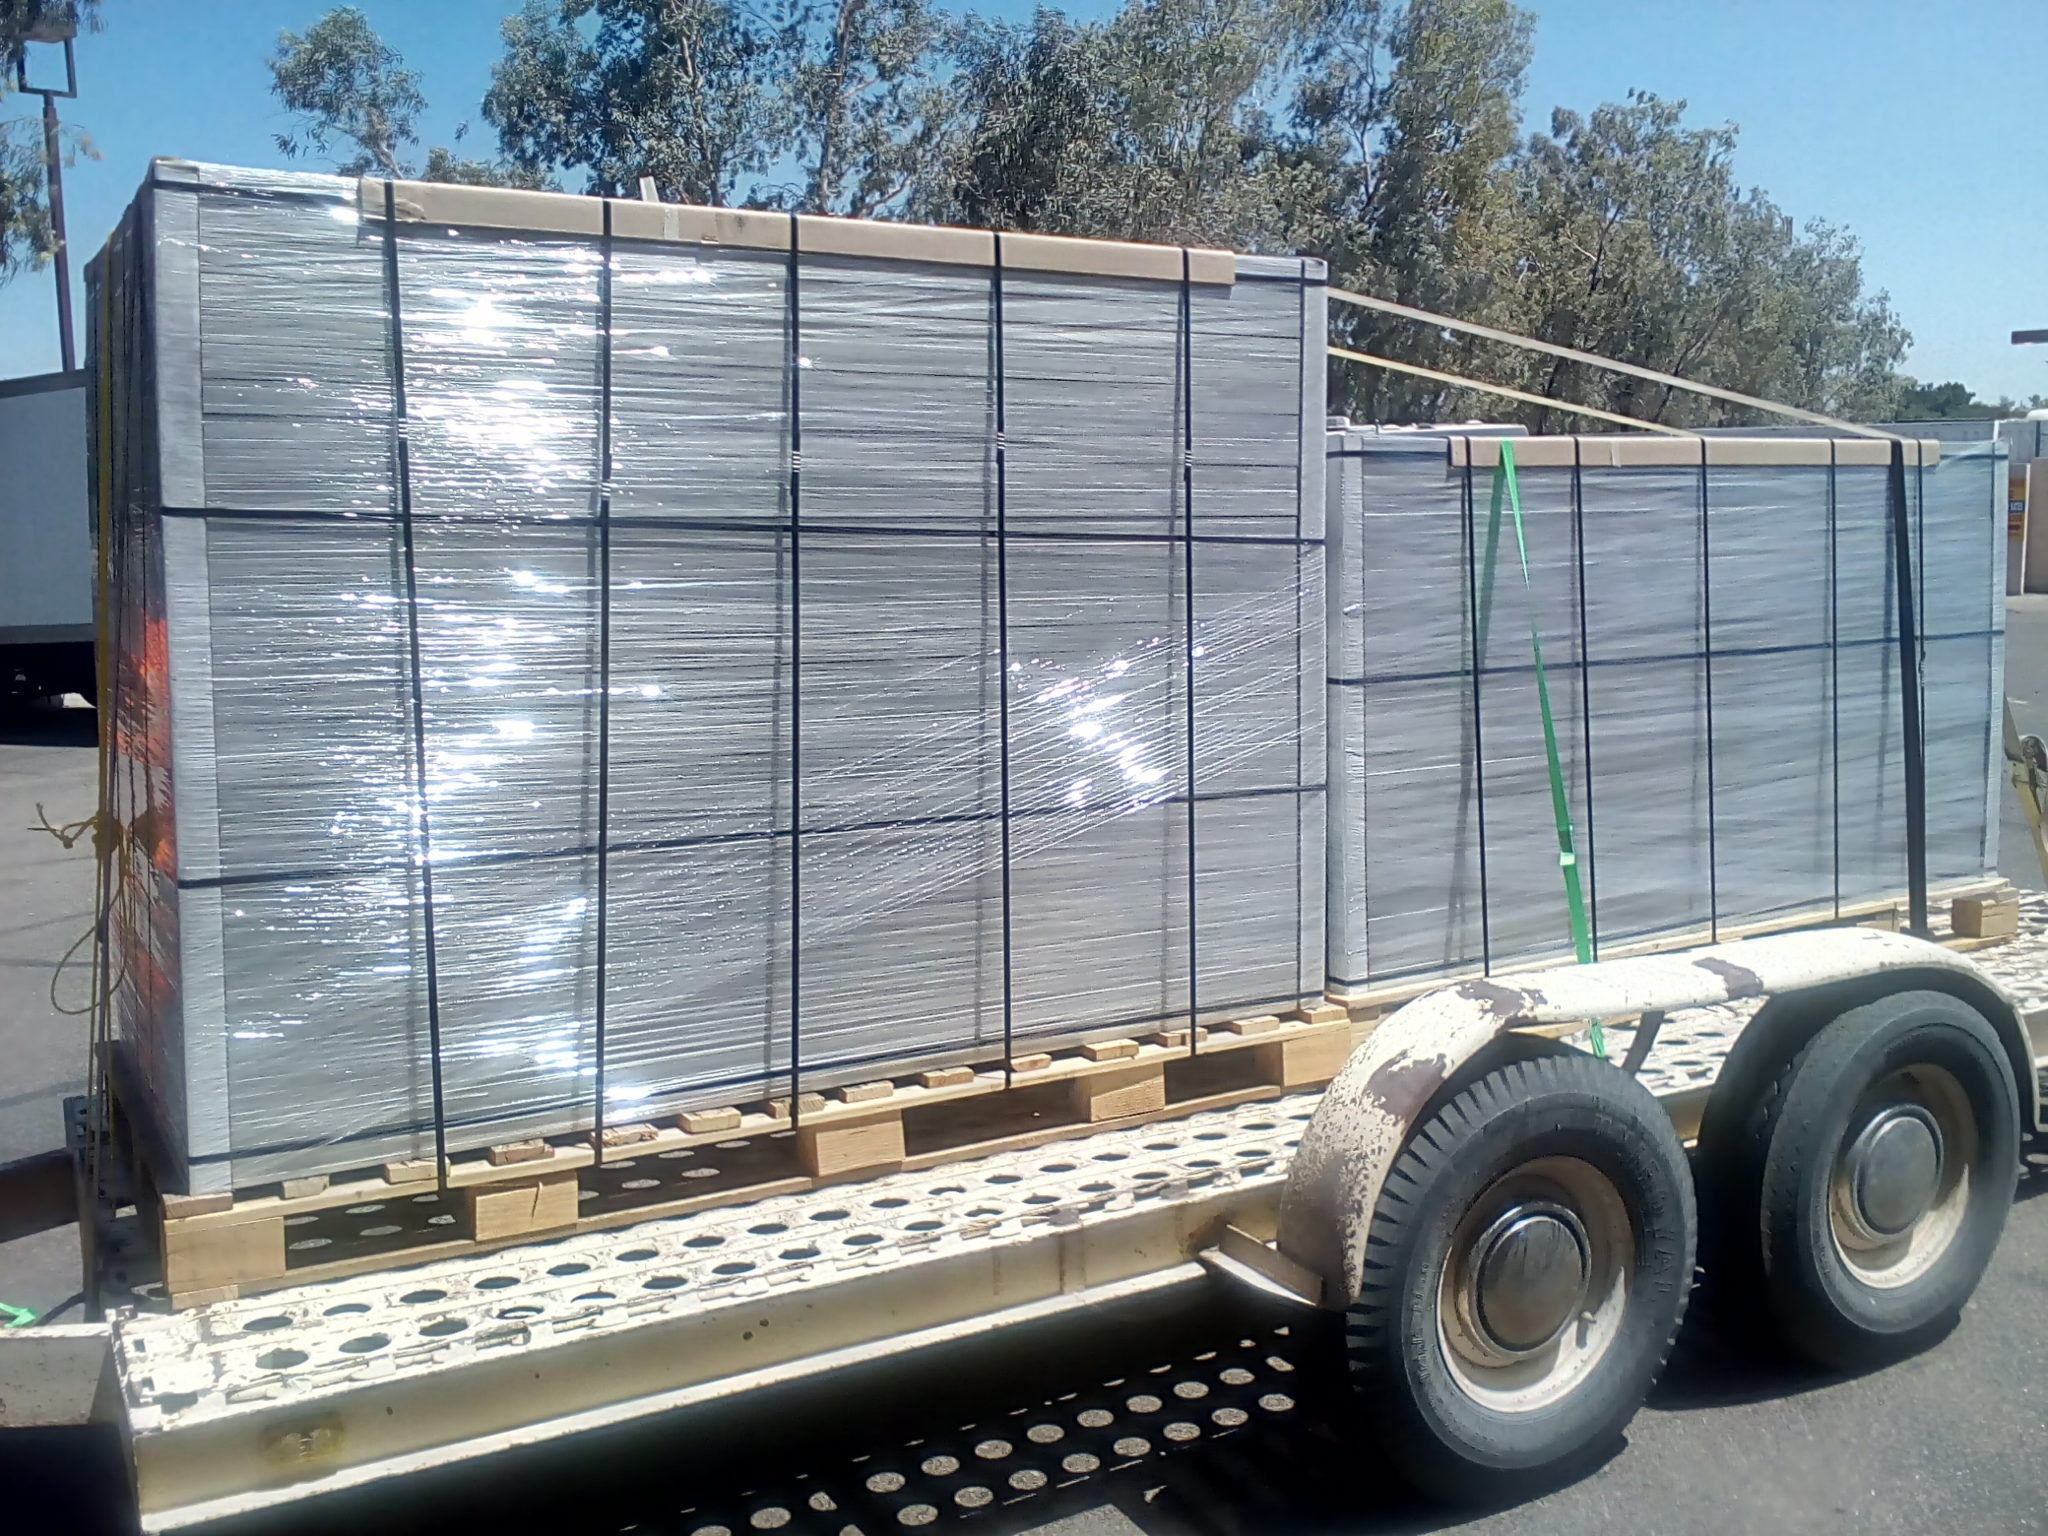 Close up large load of solar panels on trailer